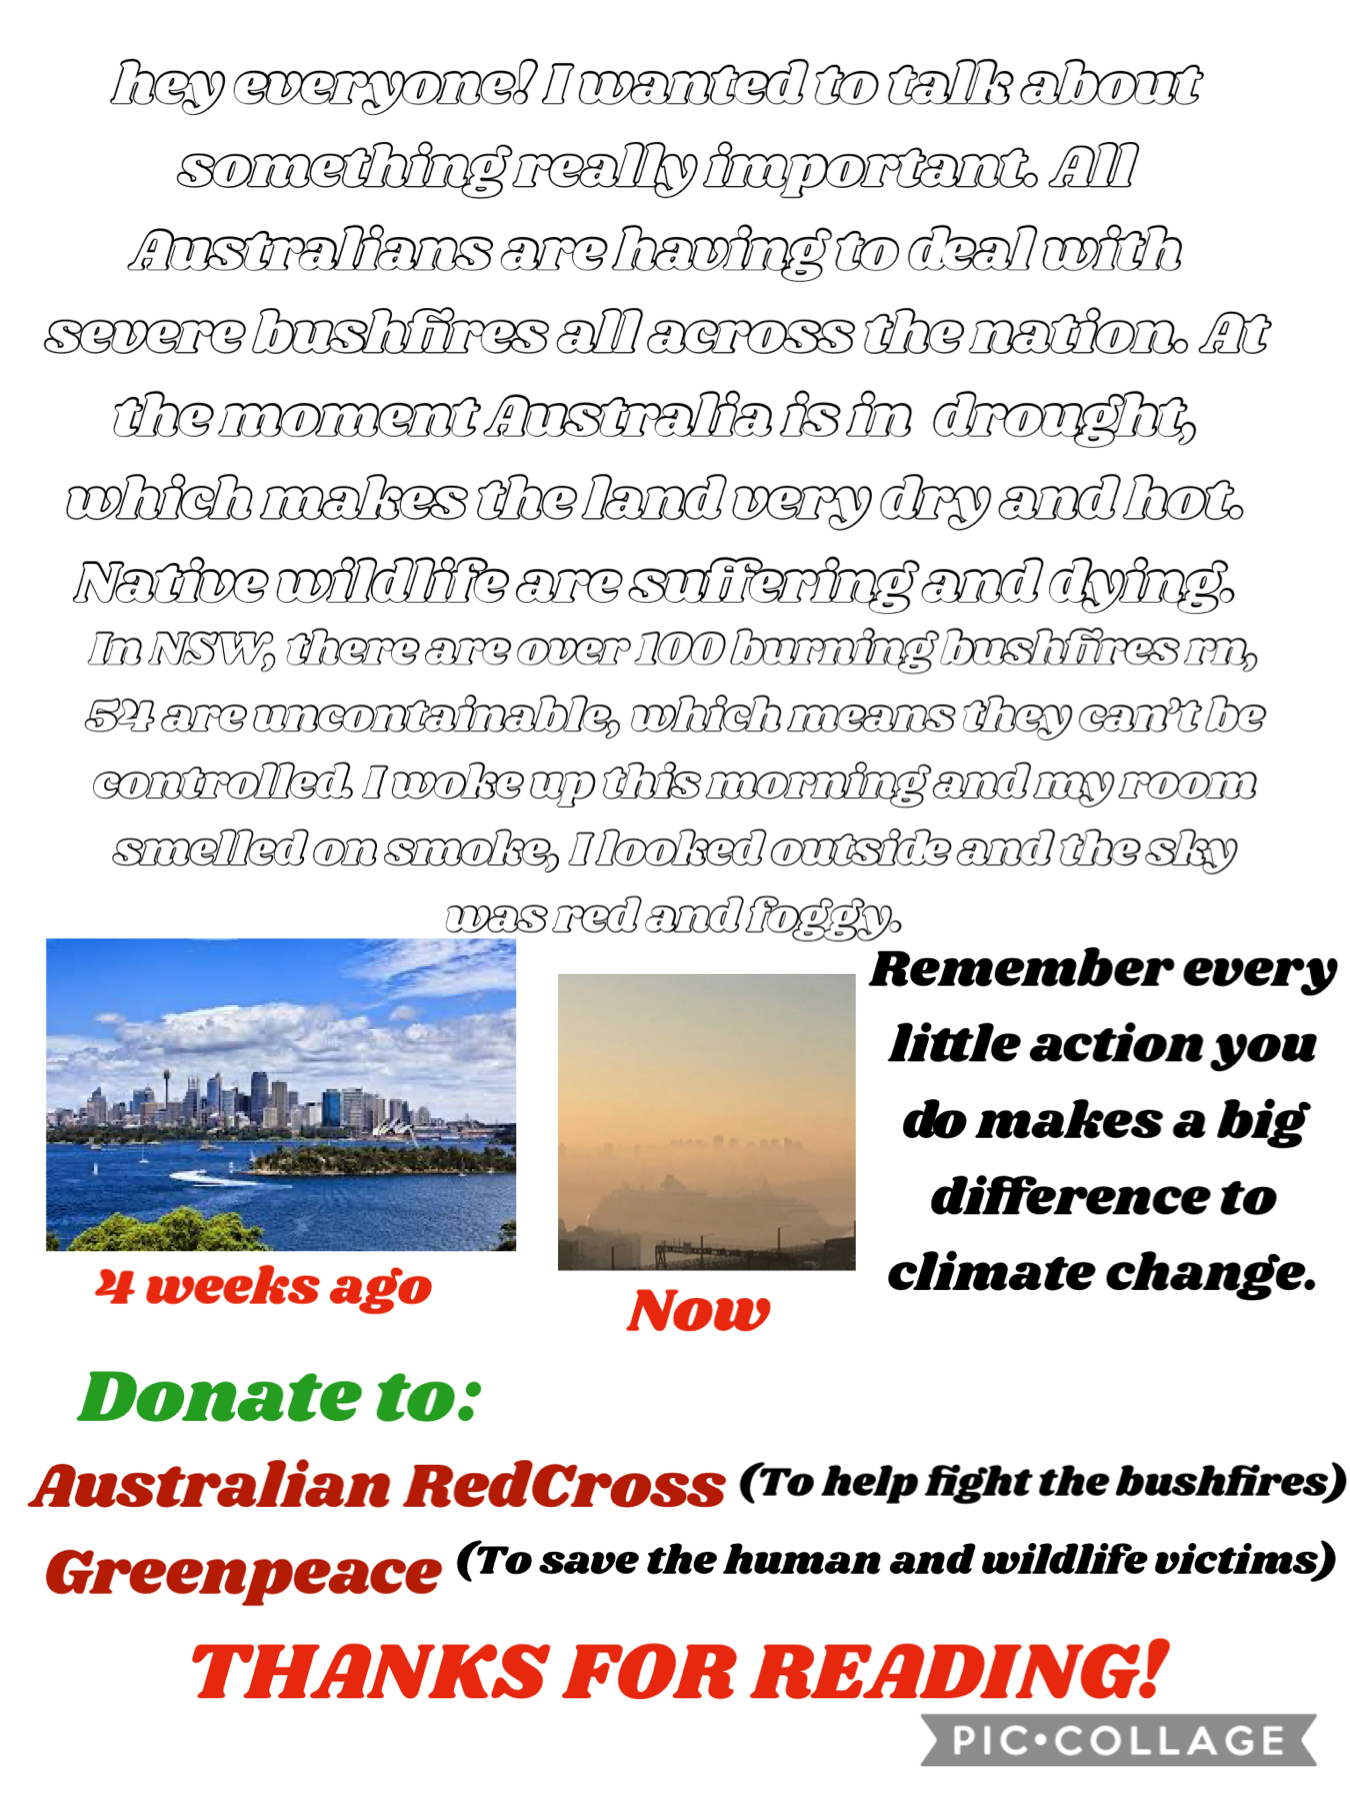 We should all start caring about climate change. It's made a huge impact on Australia. Thanks so much for reading tho! Donate to: Australian RedCross and Greenpeace 💚💚❤️❤️